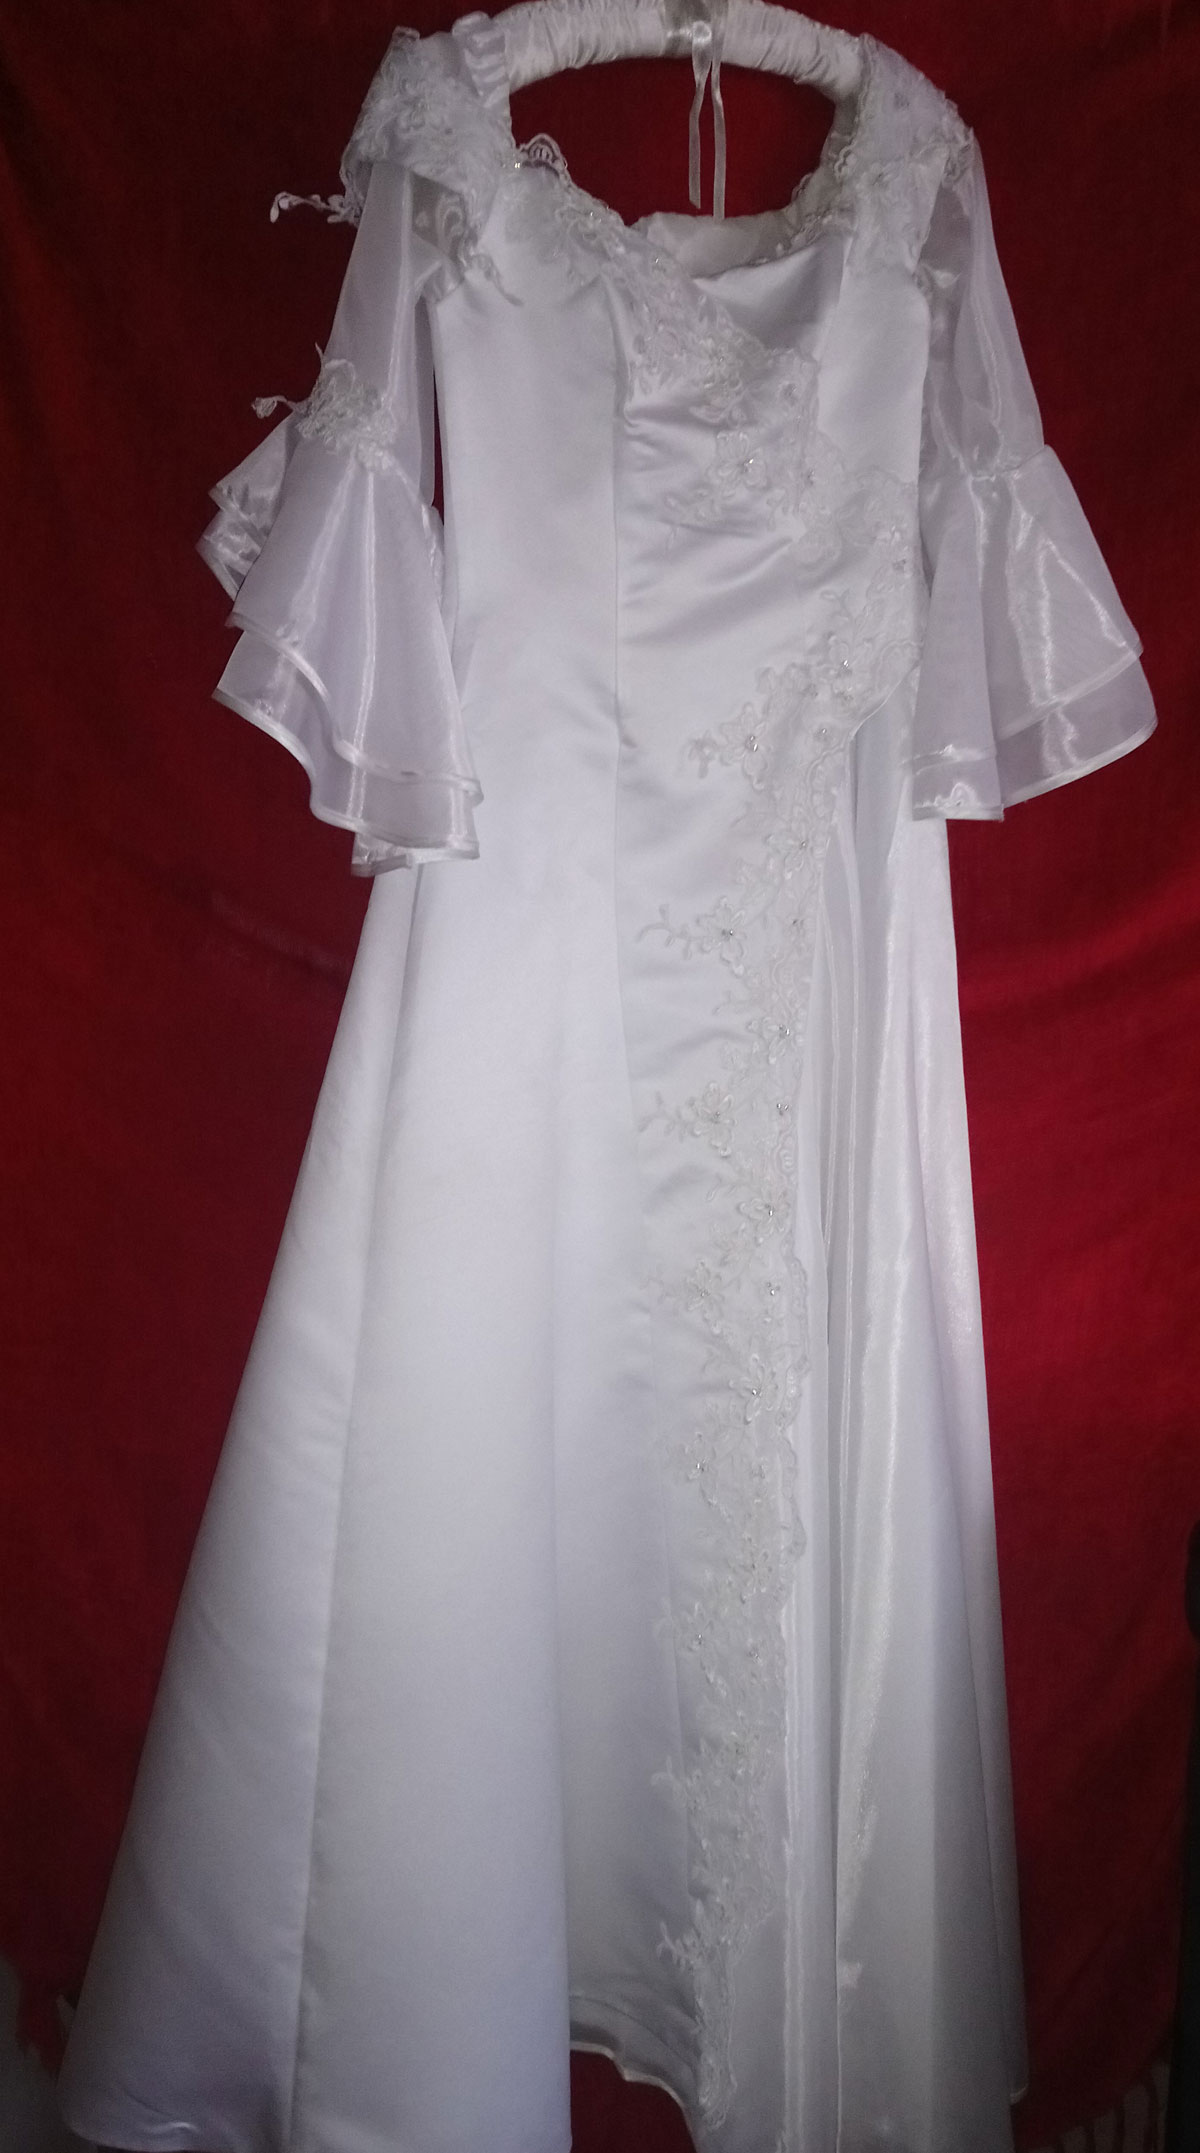 Wedding gown from Europe